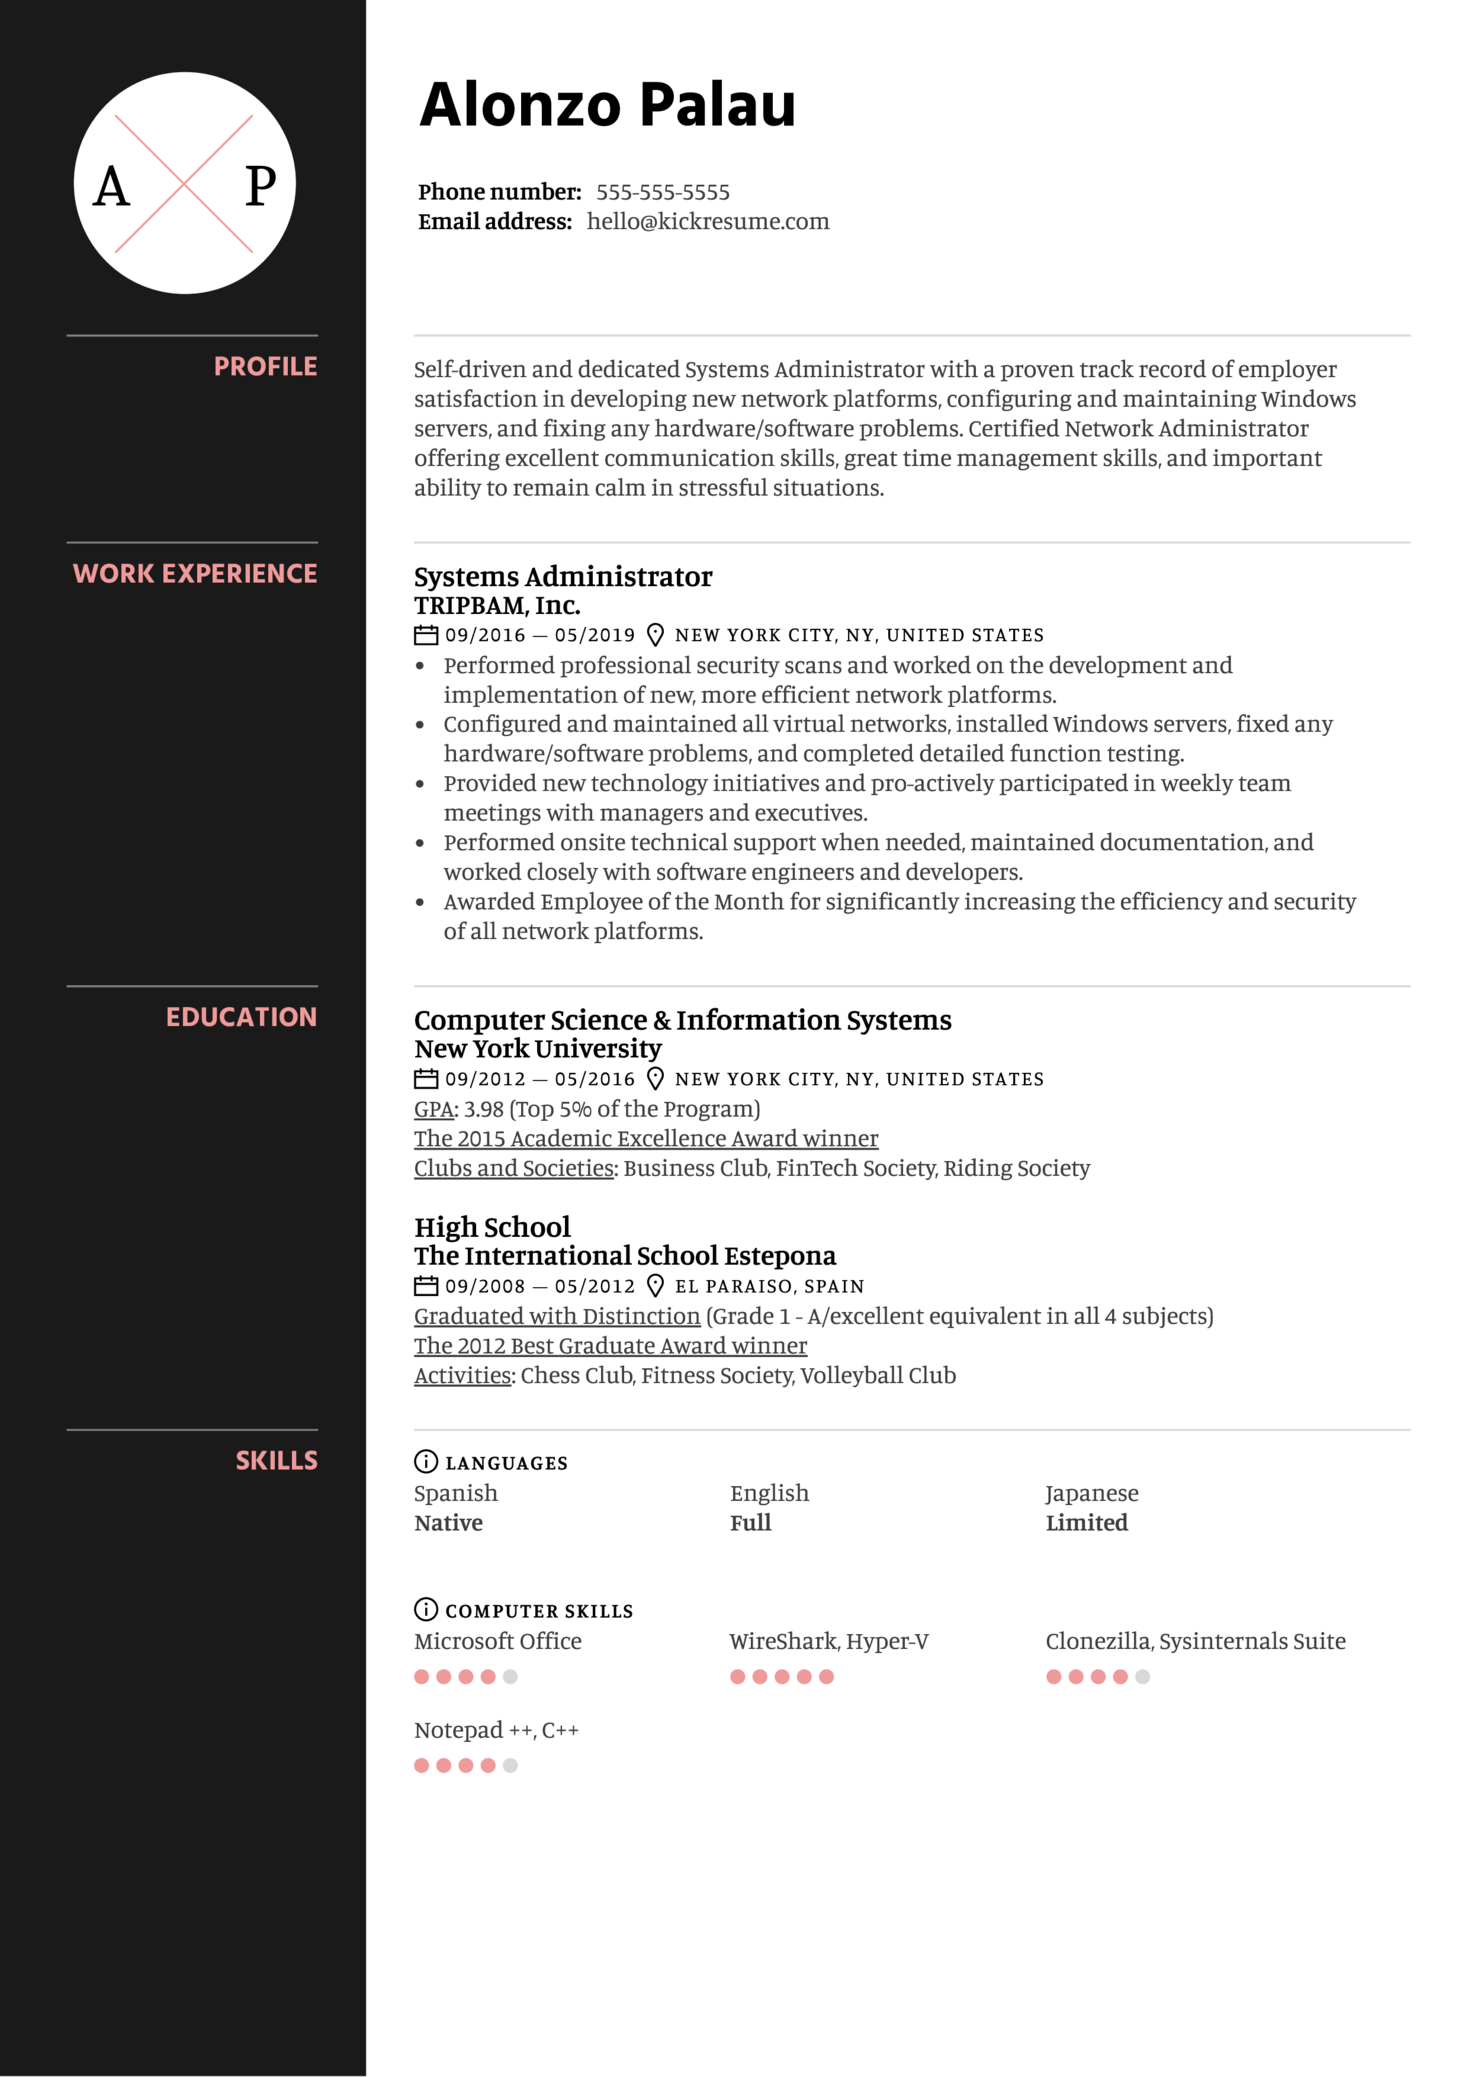 Systems Administrator Resume Sample (parte 1)